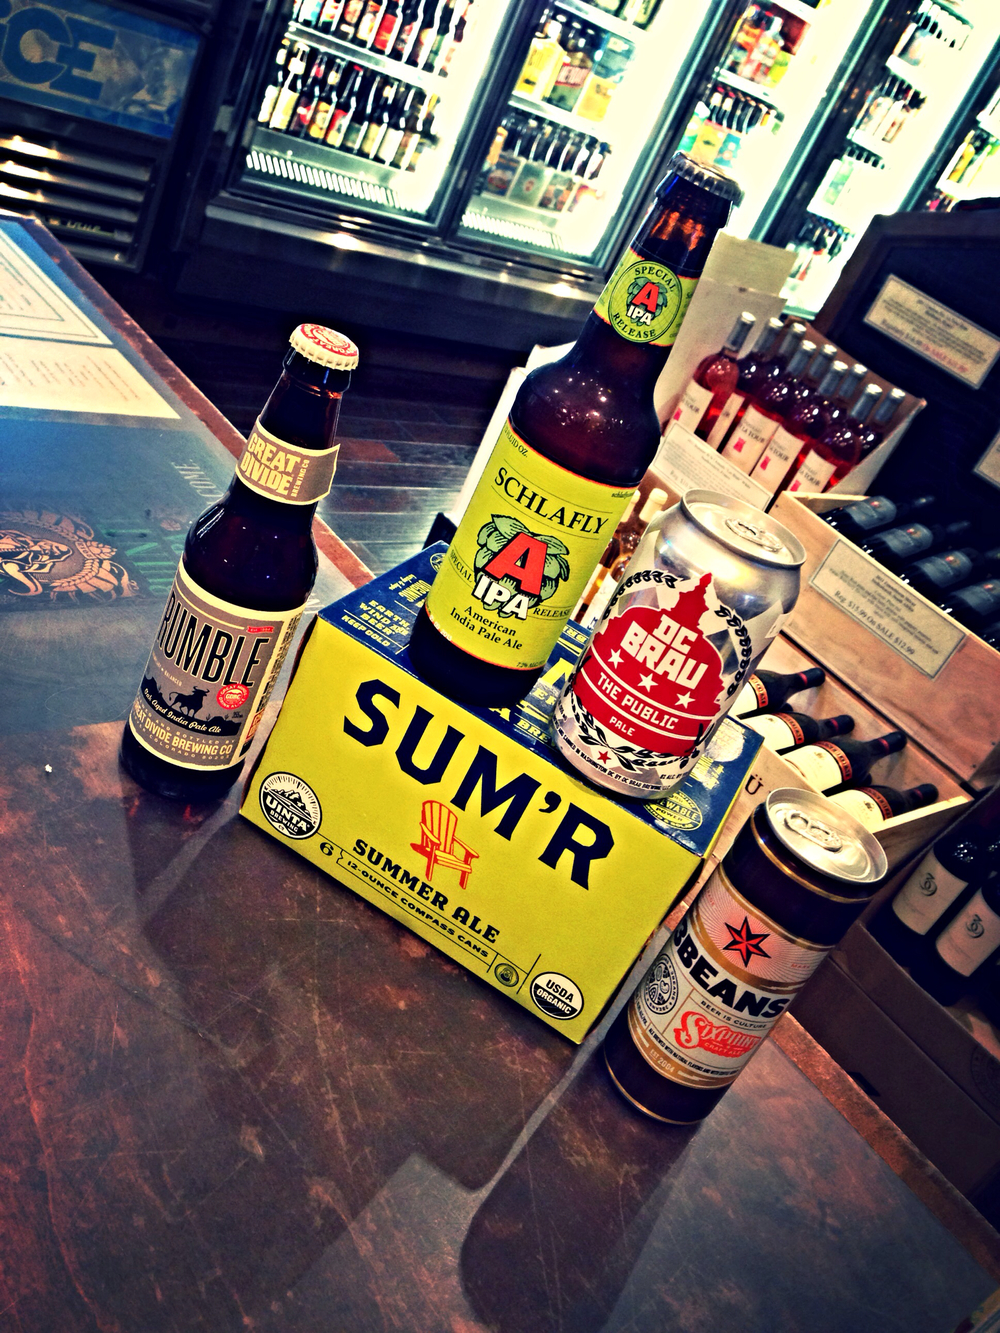 Great Divide Rumble Oak Aged IPA, Uinta Sum'r restock, DC Brau Public Pale, and Sixpoint 3 Beans